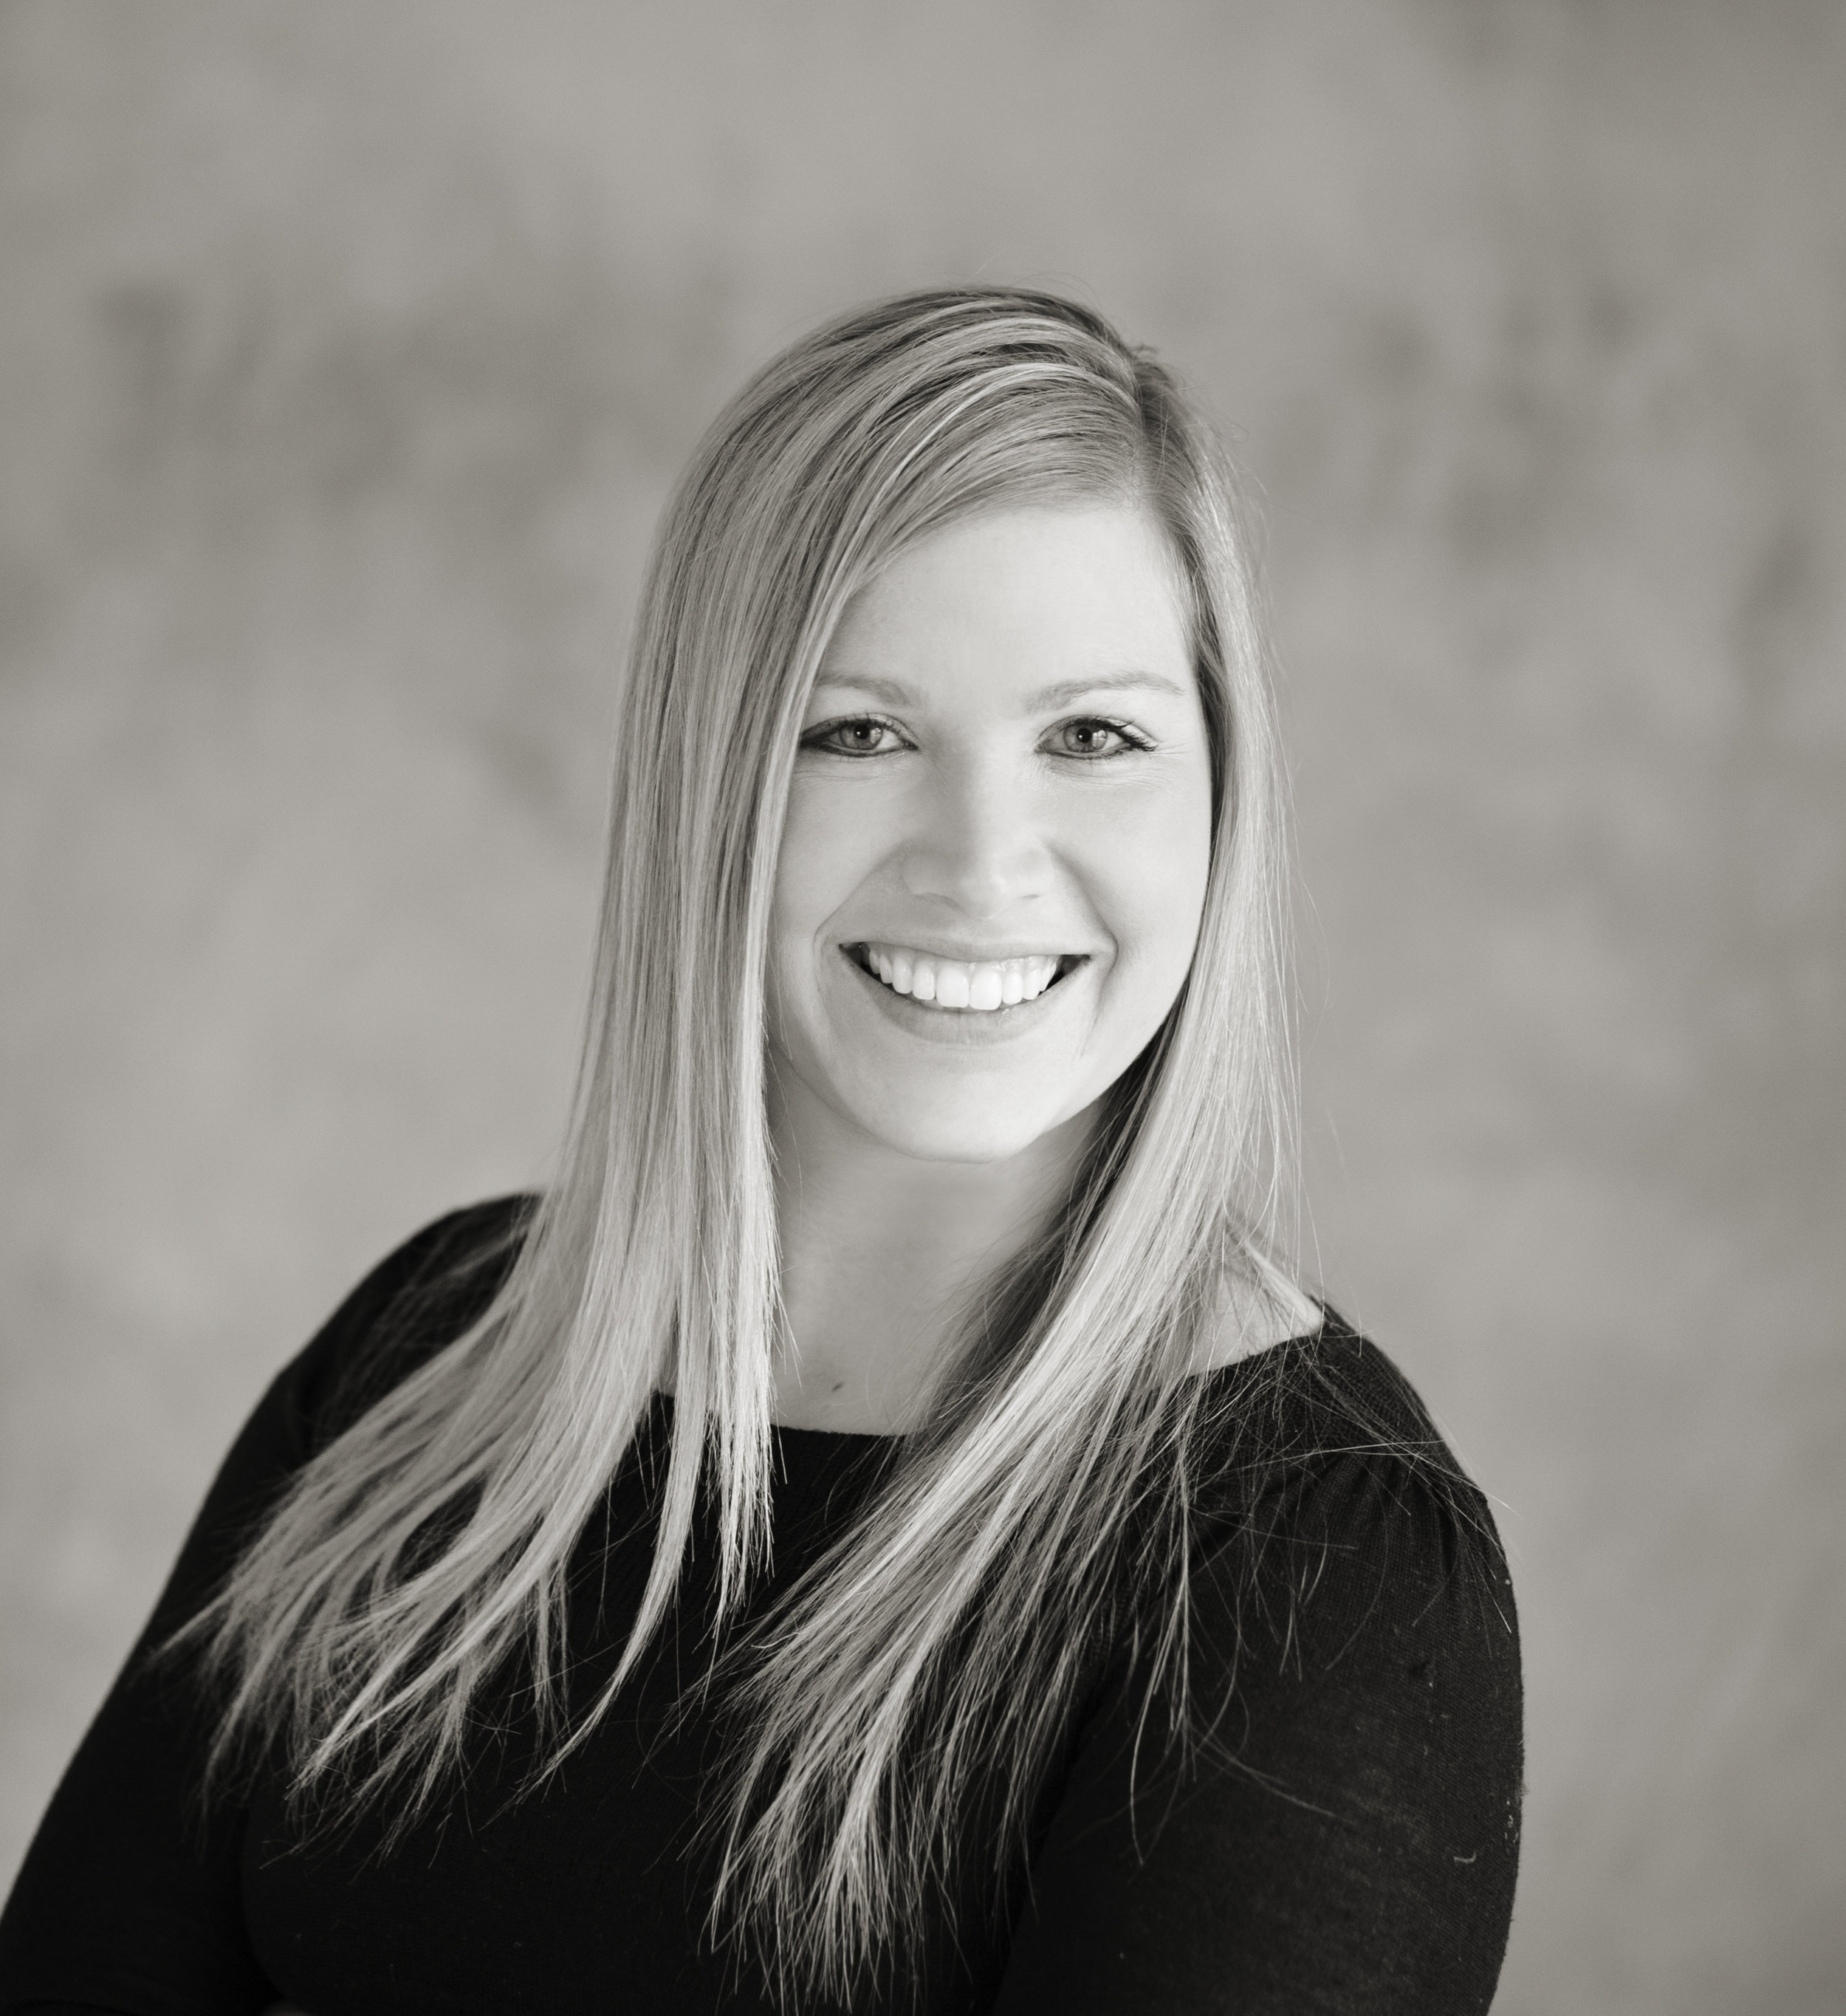 Courtney Beals  |  Benefit Analyst  cbeals@cibcinc.com